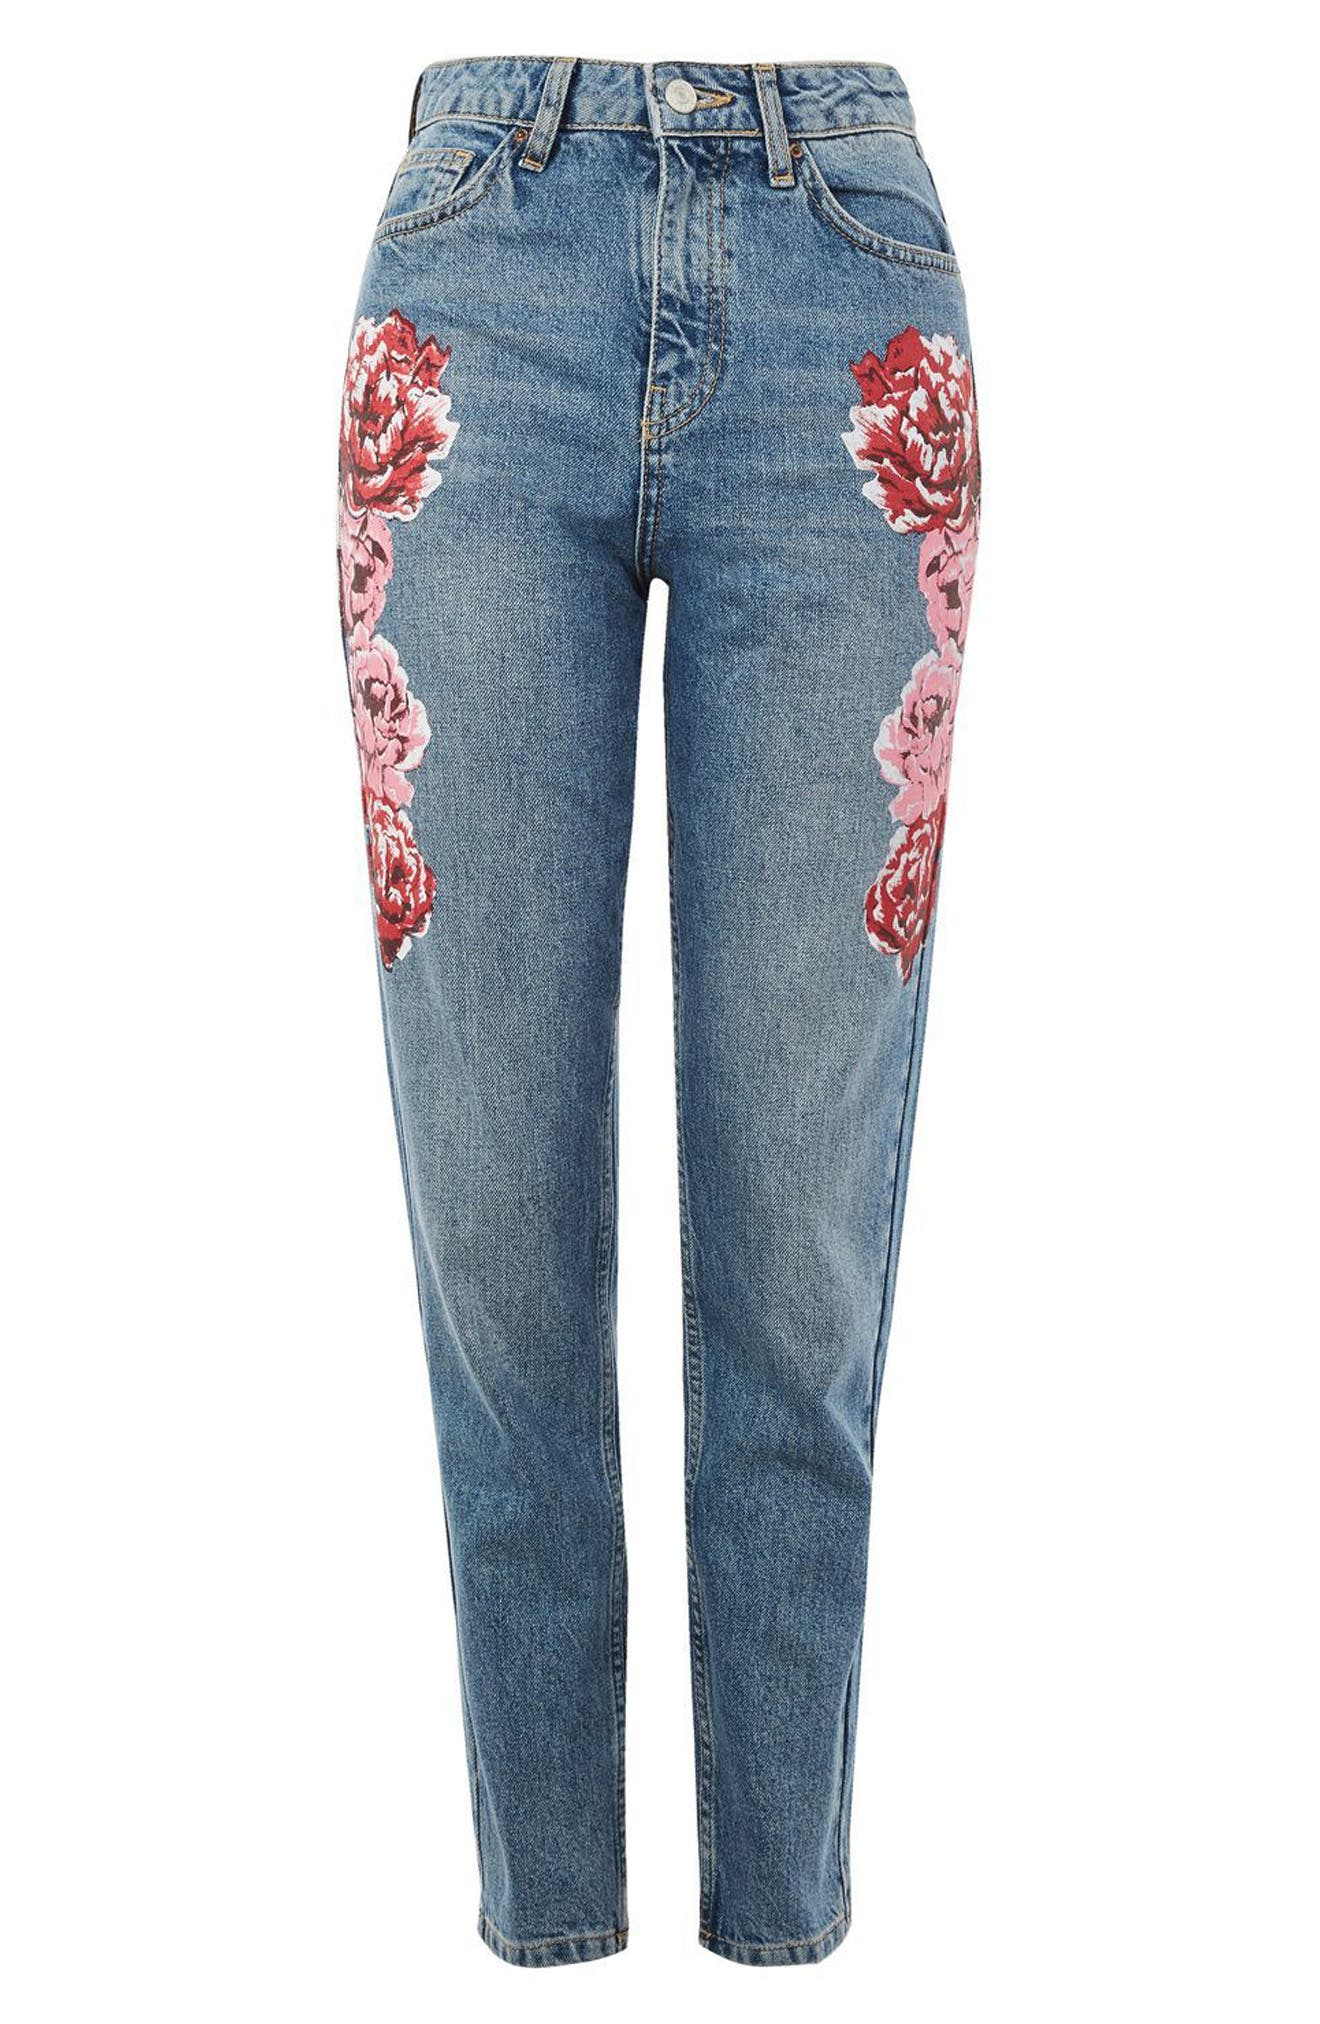 Peony Print Crop Mom Jeans,                             Alternate thumbnail 4, color,                             420